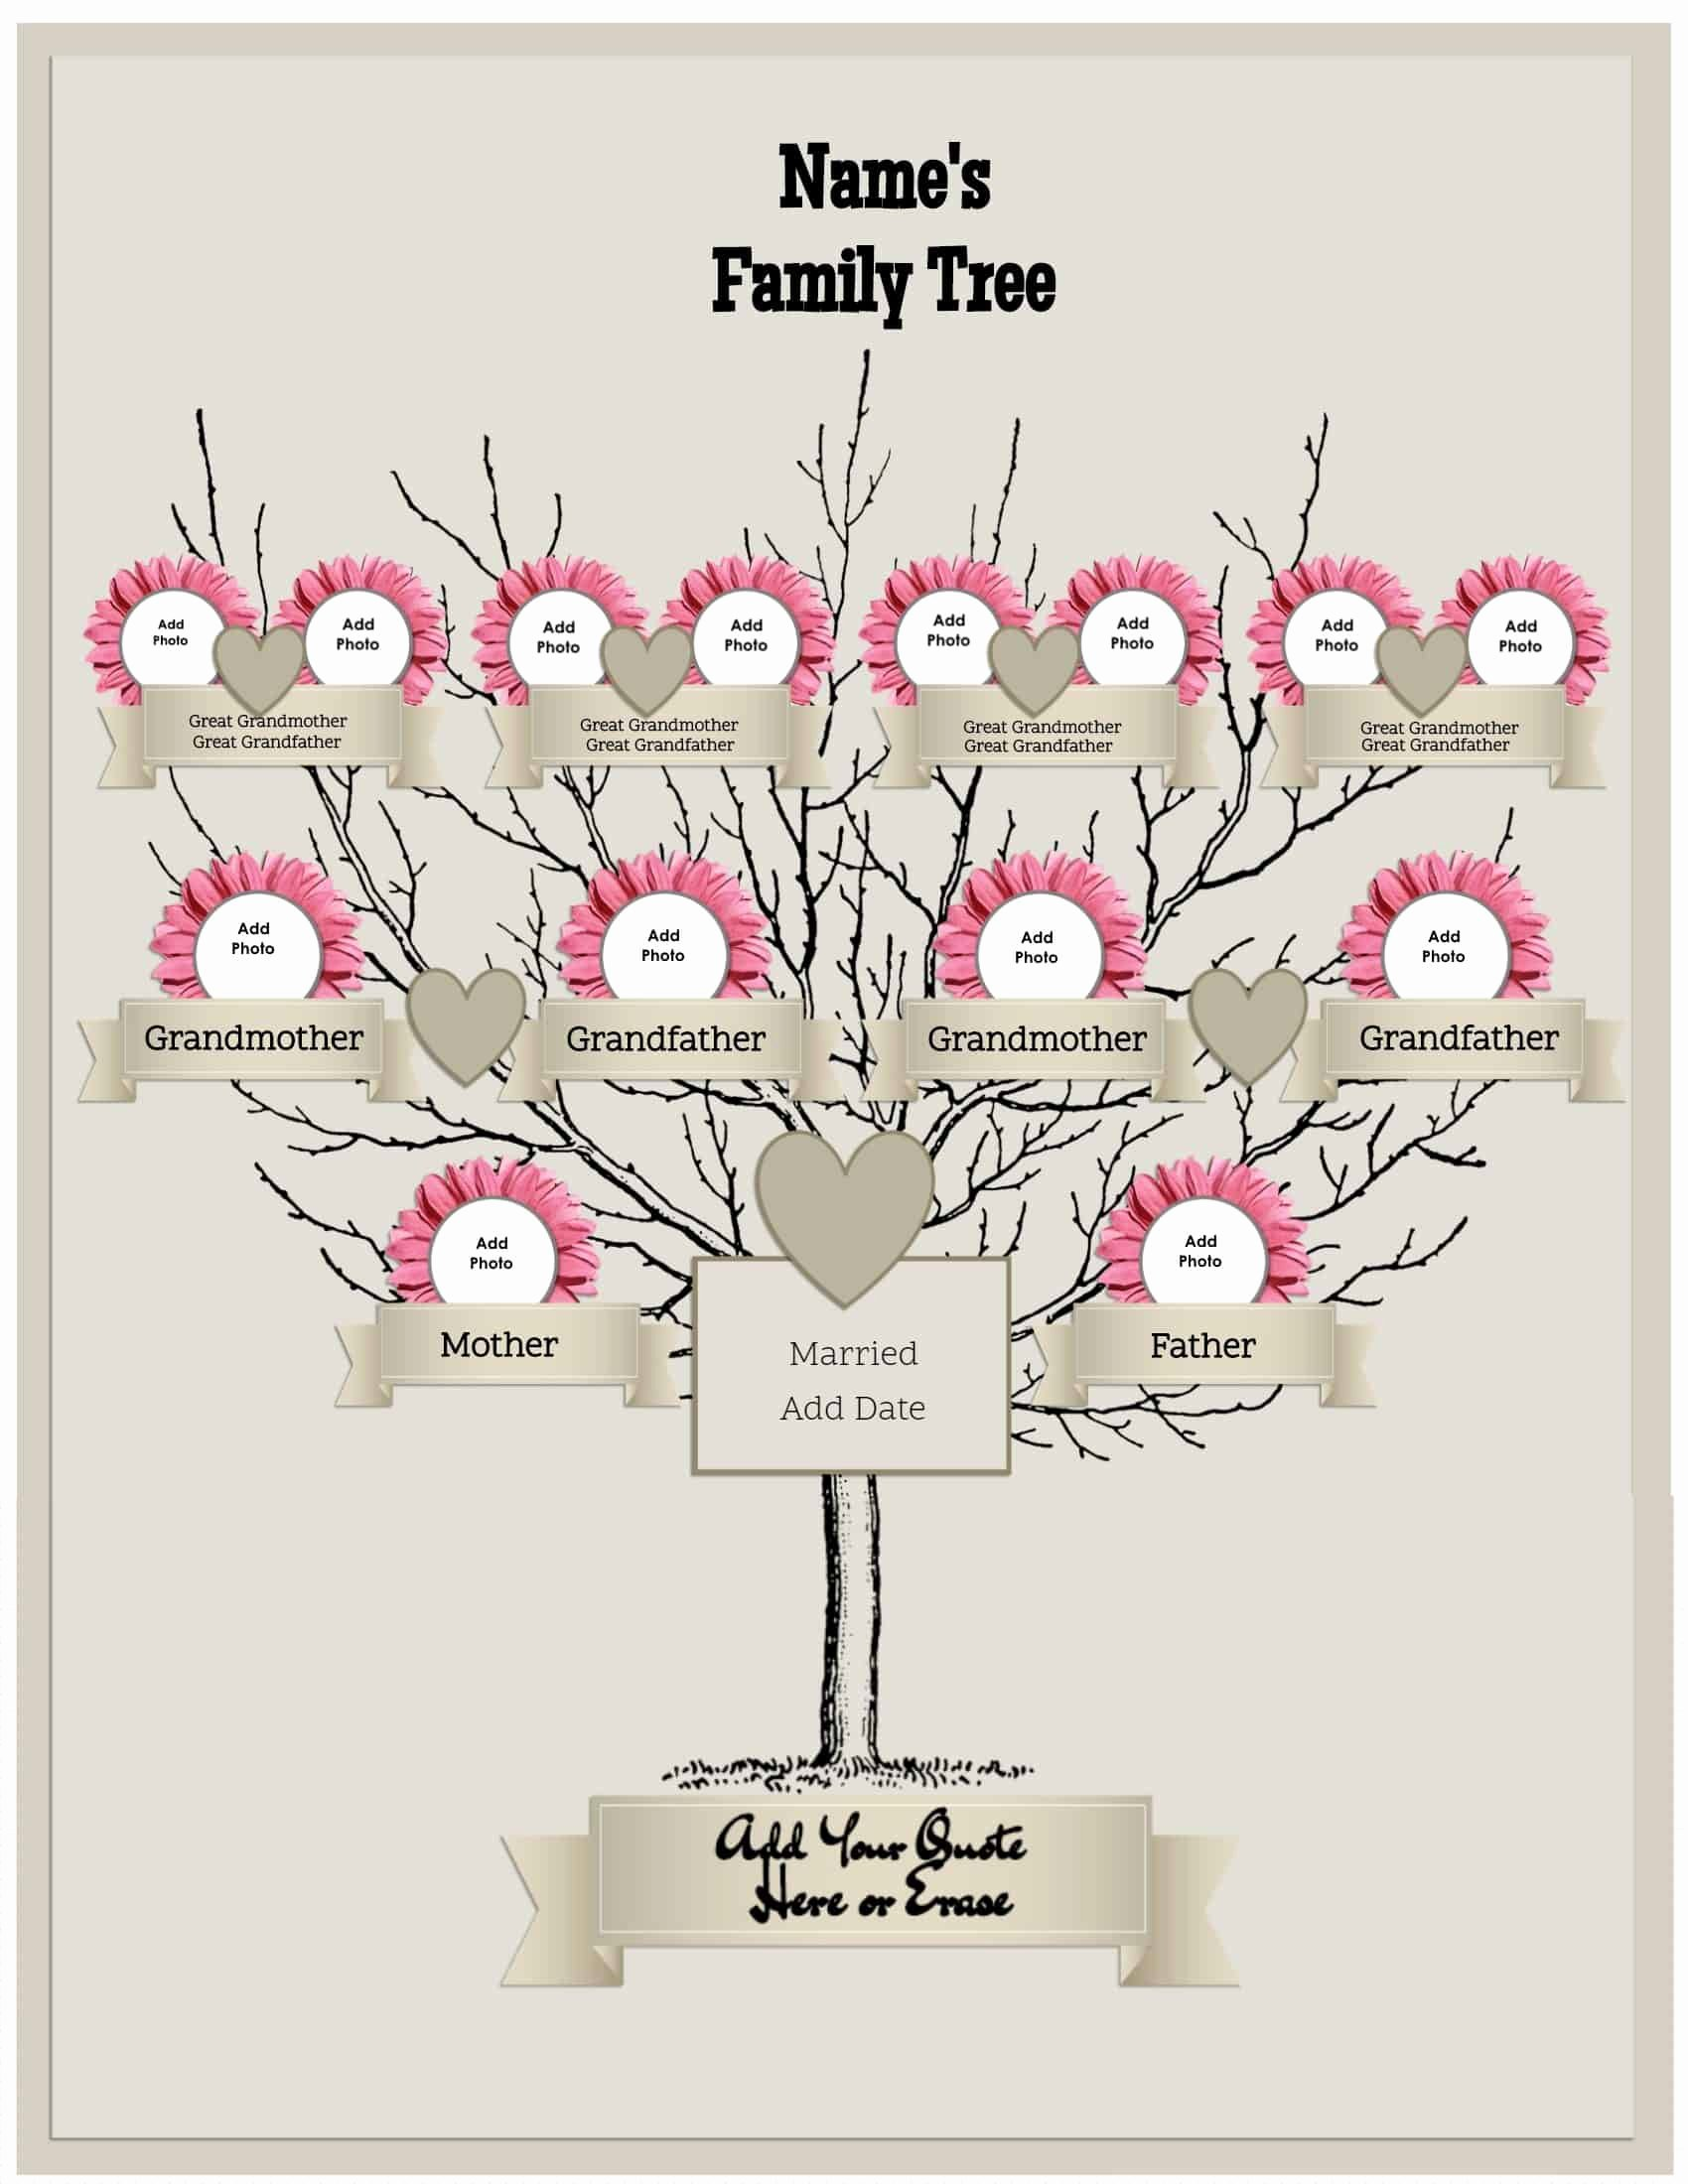 Three Generation Family Tree Elegant 3 Generation Family Tree Generator